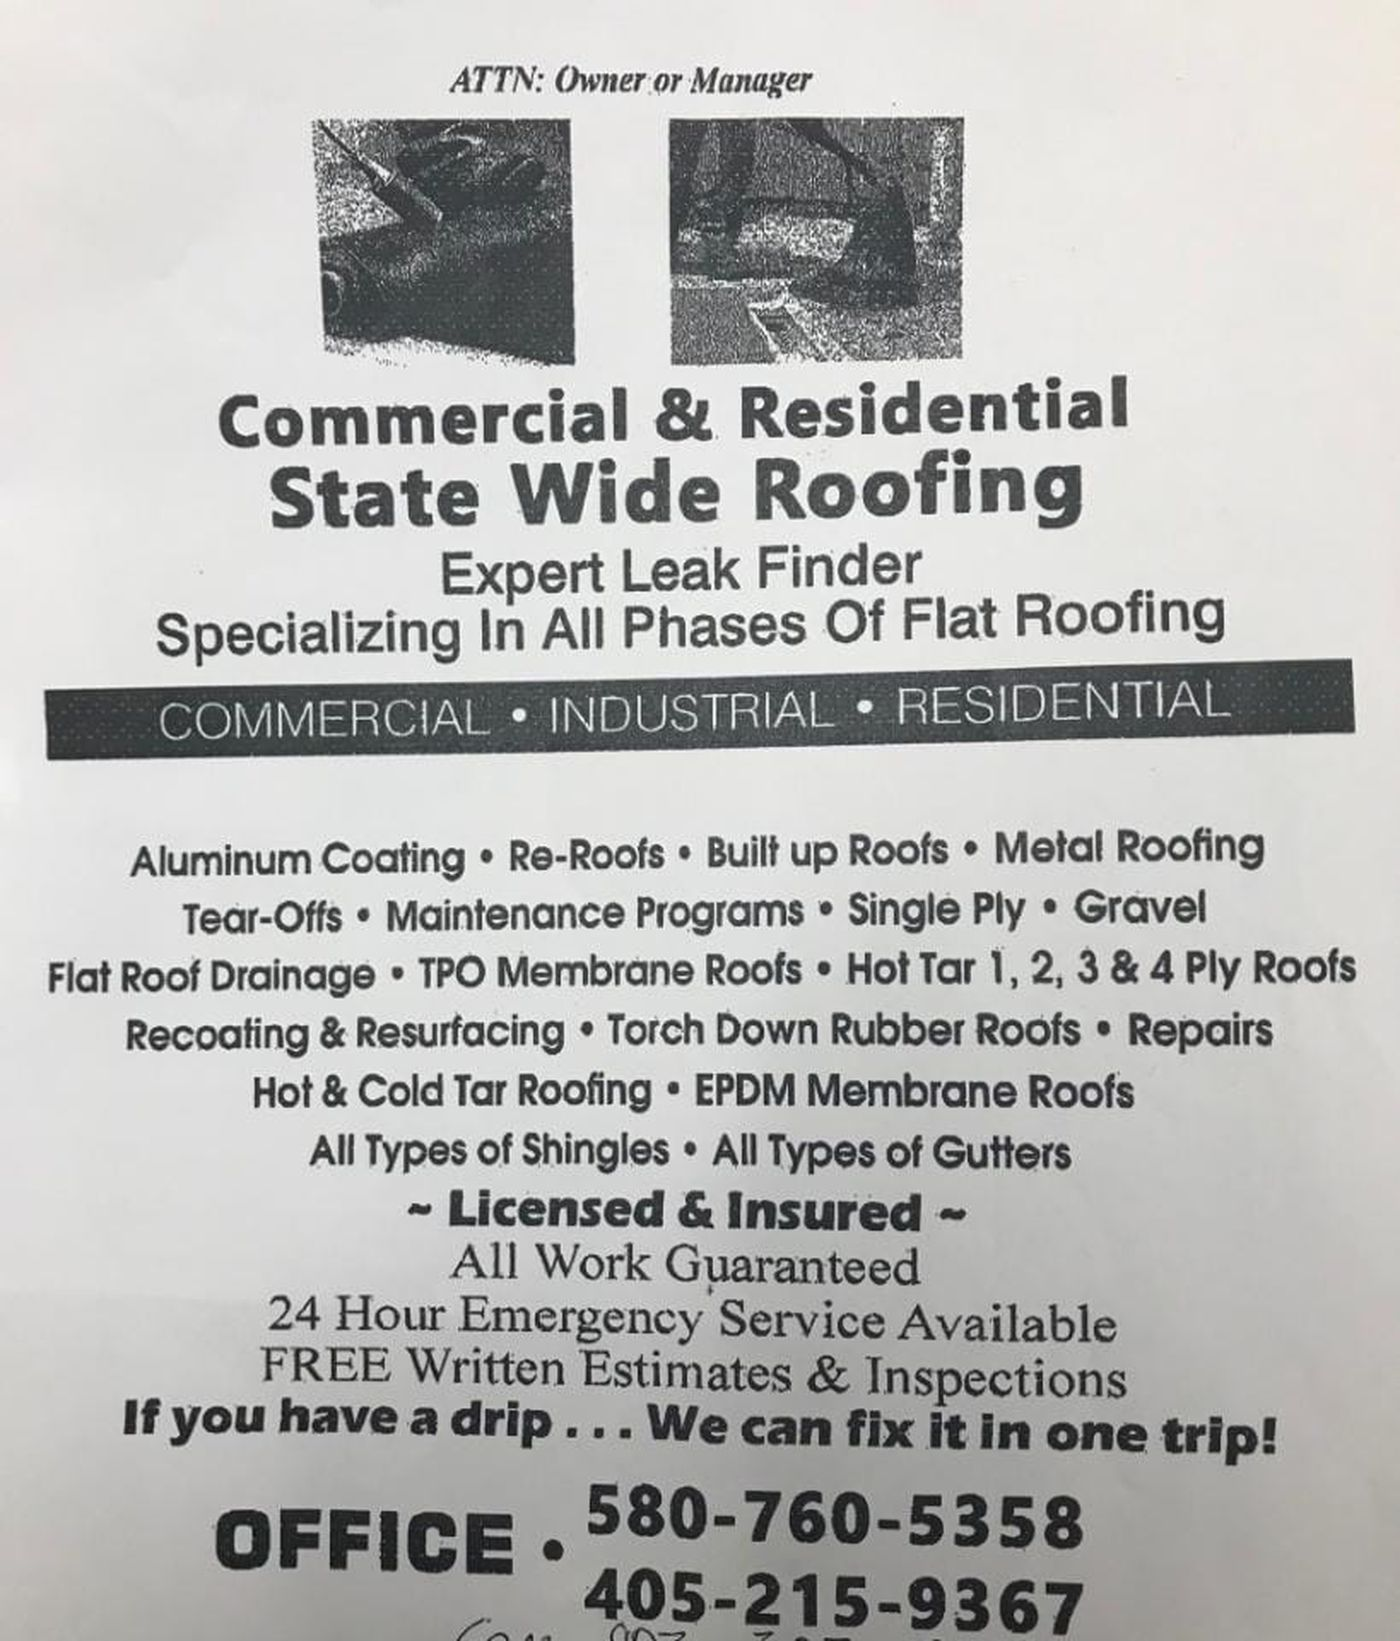 Texas County Officials Warn Of Roofing Scam